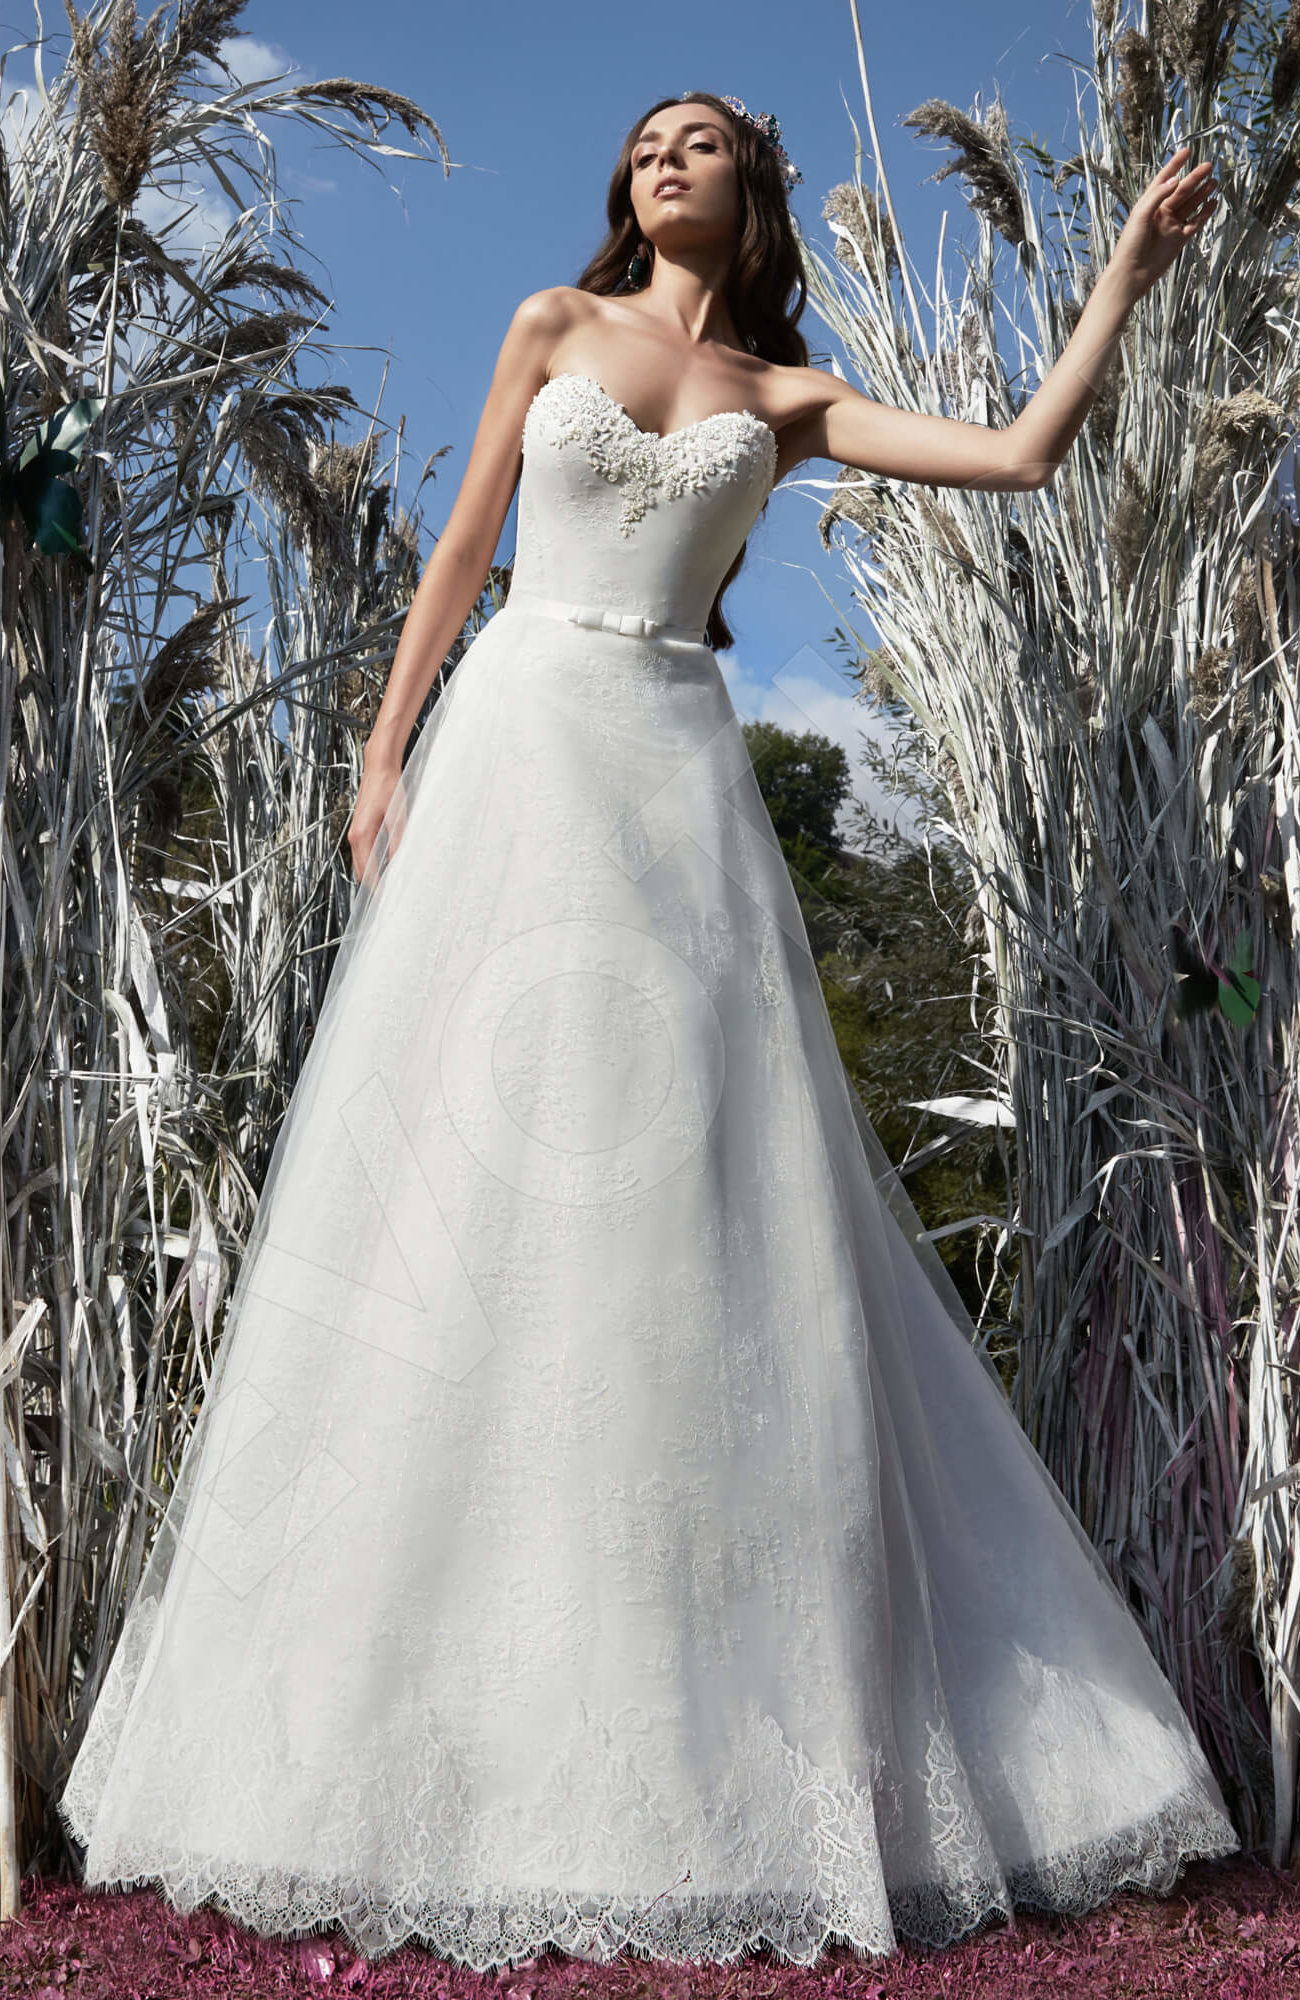 Devotion Dresses blog   a trove of wedding tips and guides